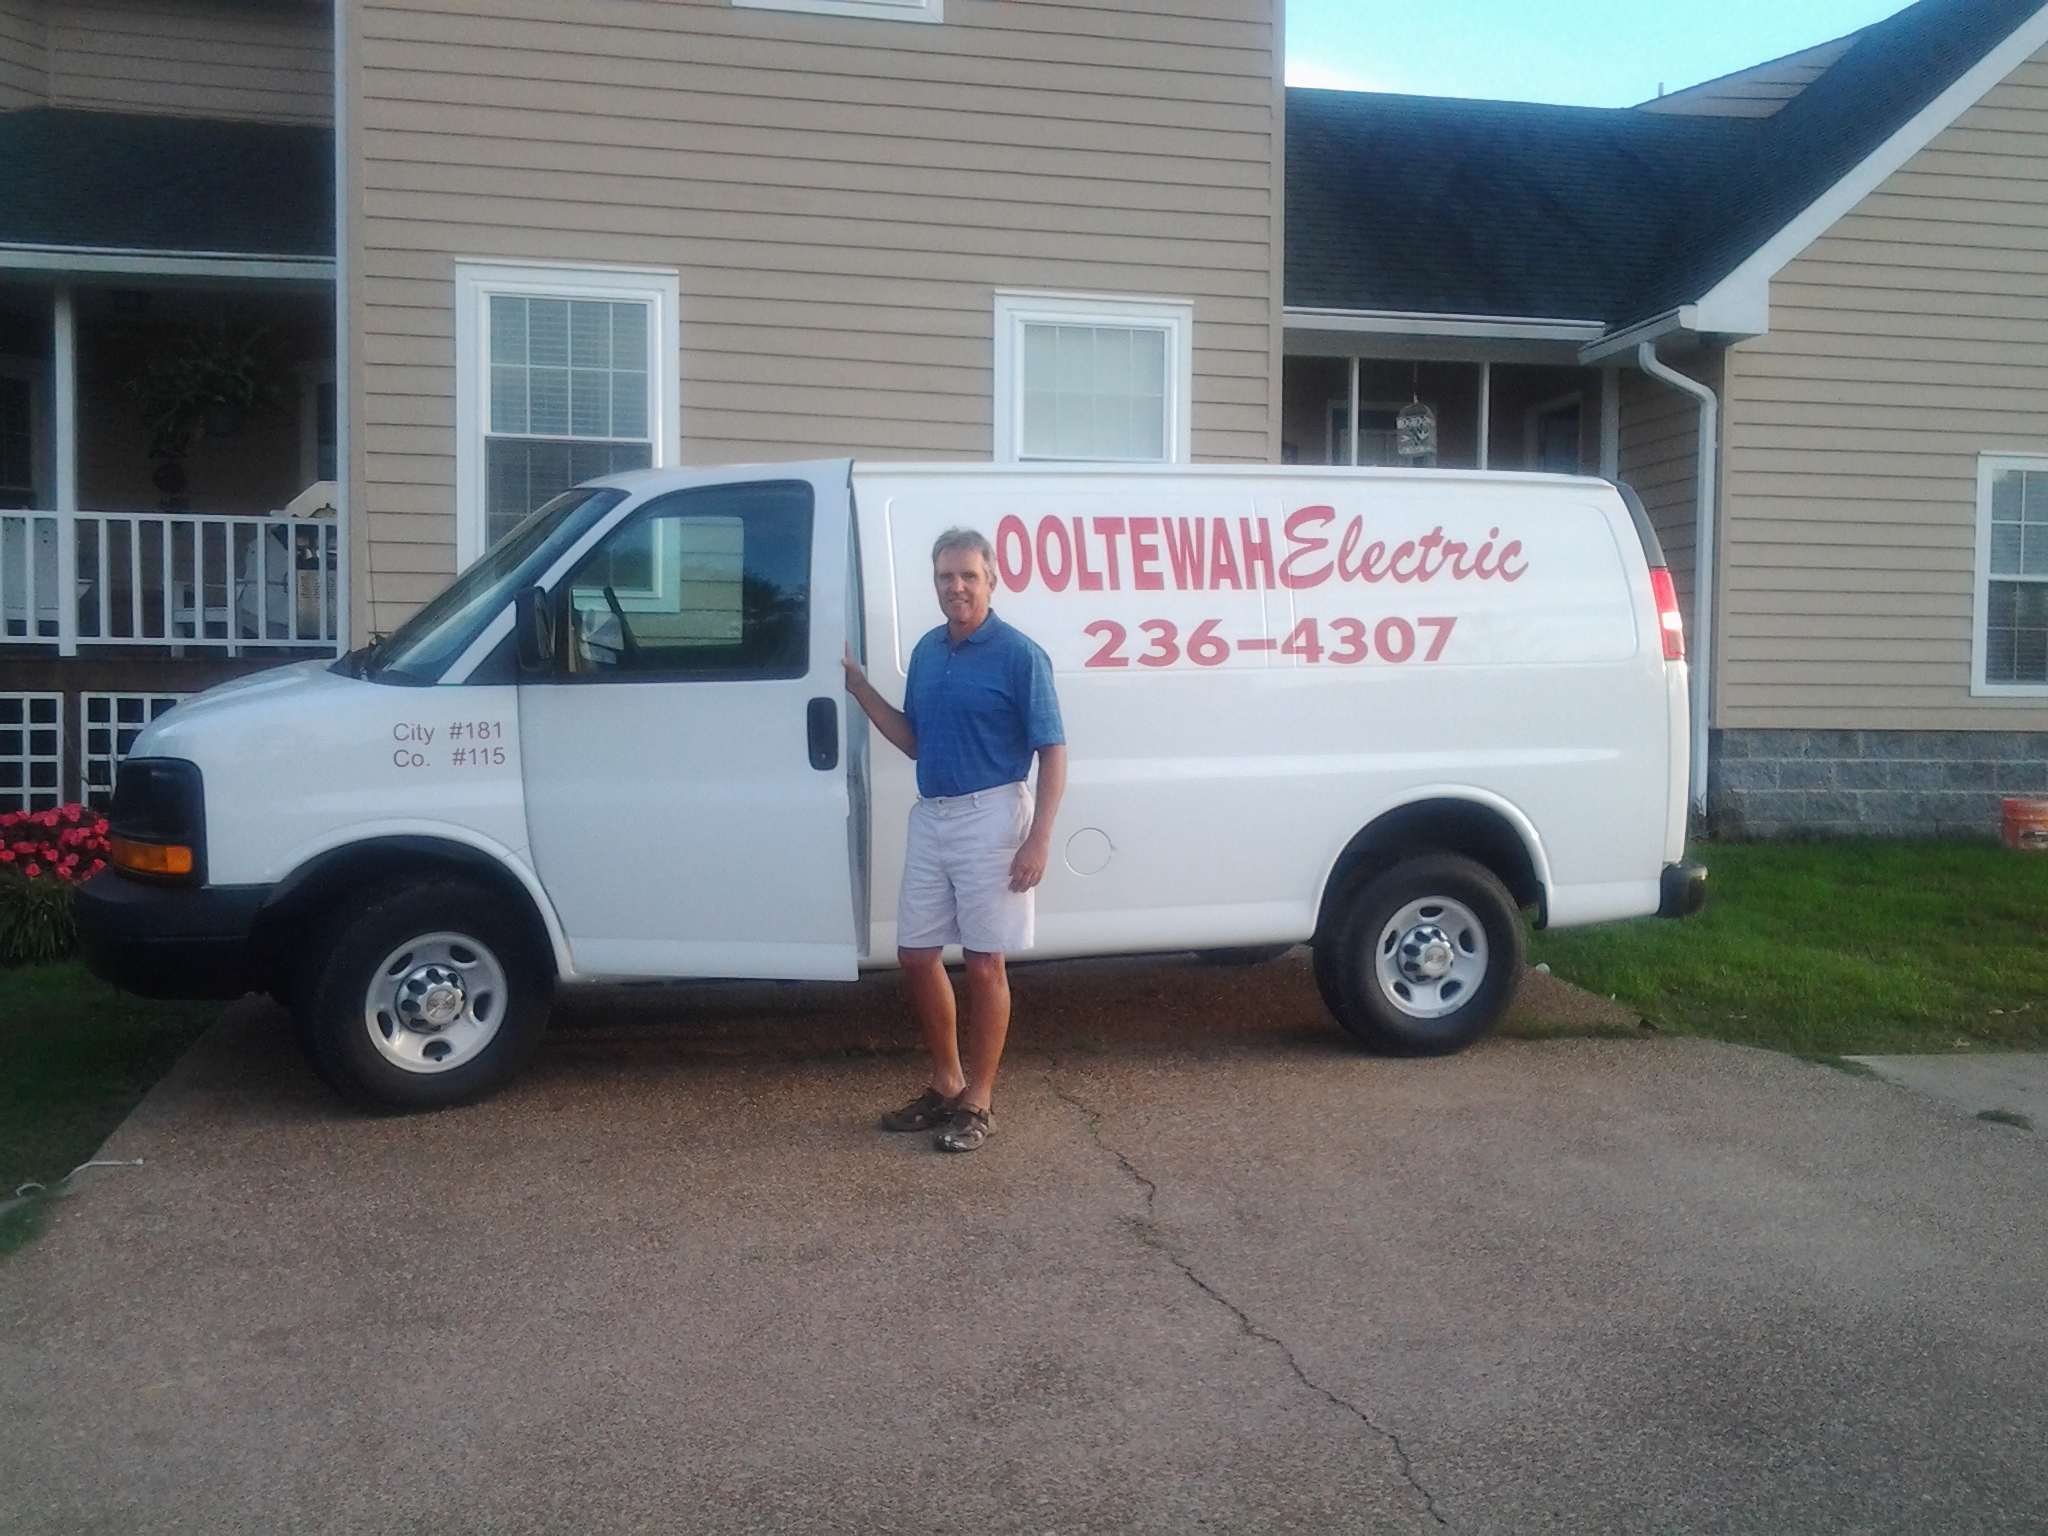 Ooltewah Electric